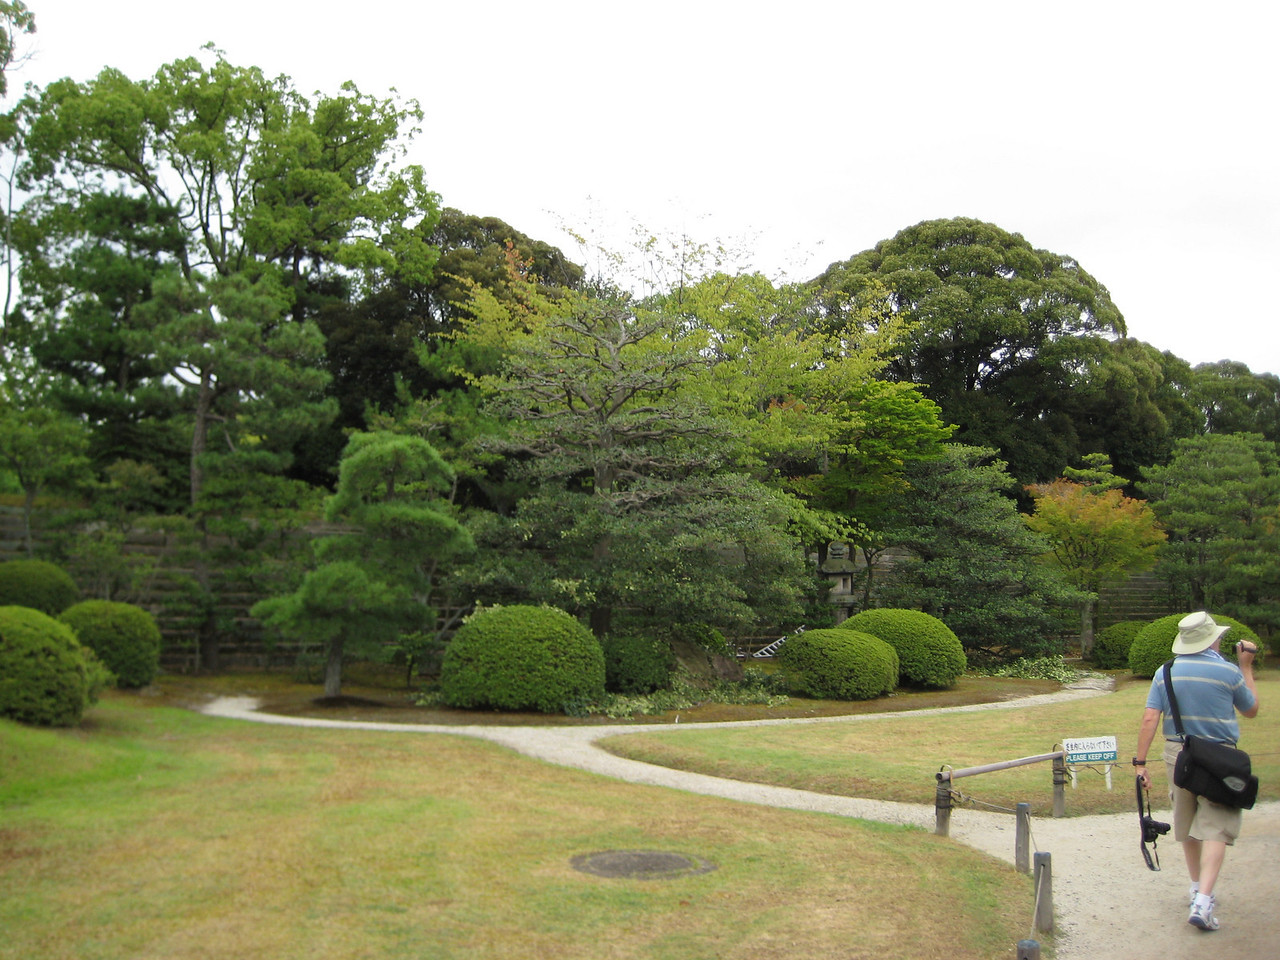 A view of the Honmaru Gardens